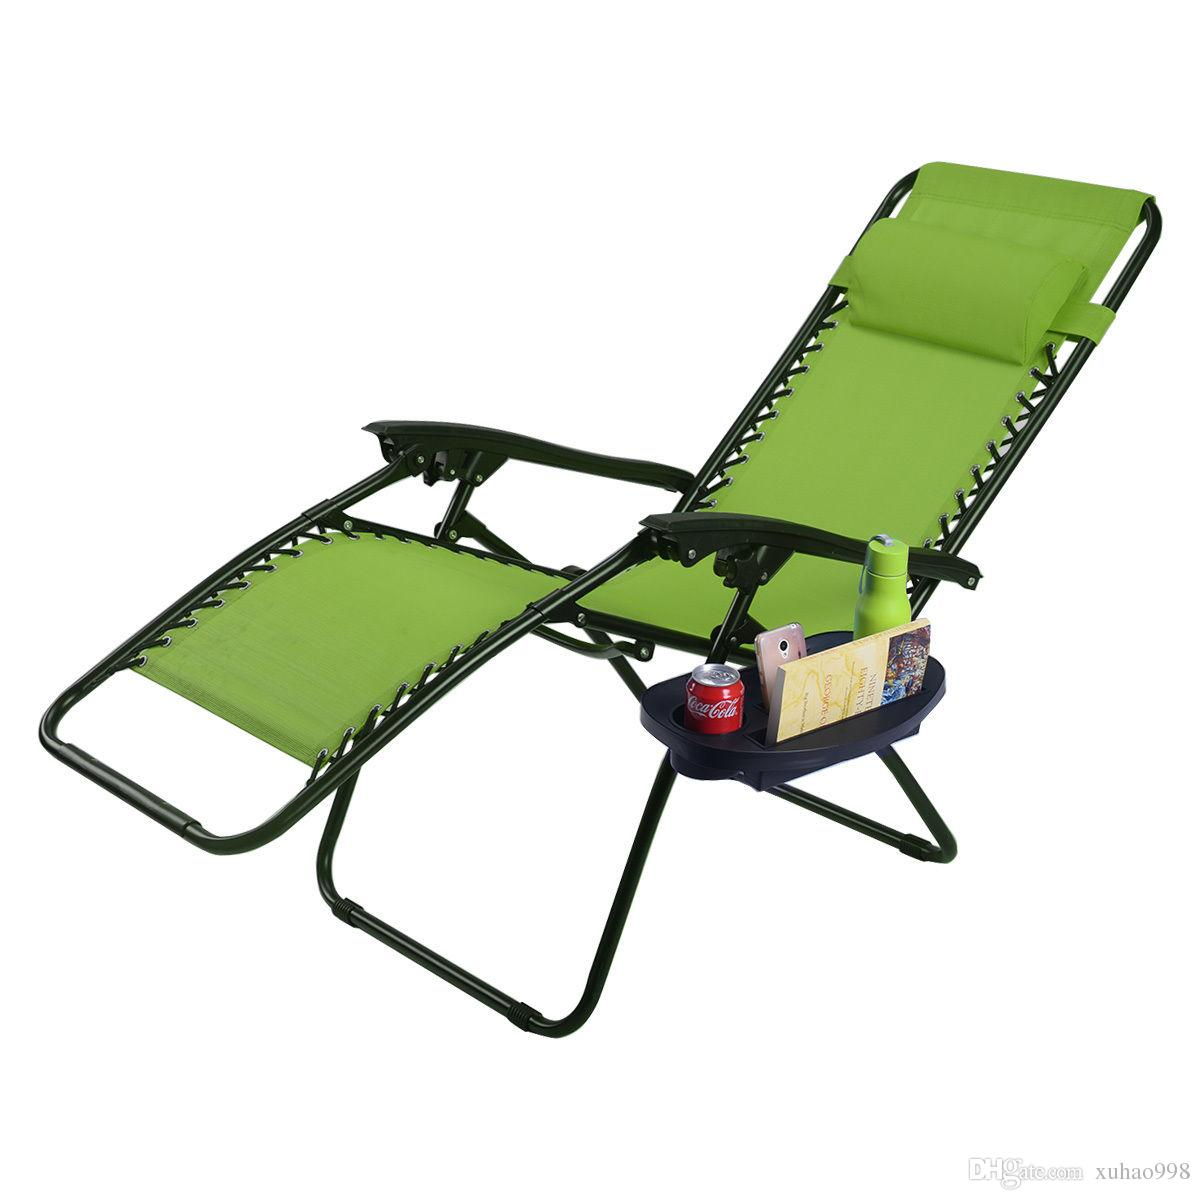 2017 Folding Zero Gravity Reclining Lounge Chairs Outdoor Beach Patio W/Utility Tray From Xuhao998 $33.17 | Dhgate.Com  sc 1 st  DHgate.com : recliner lounge chairs - islam-shia.org